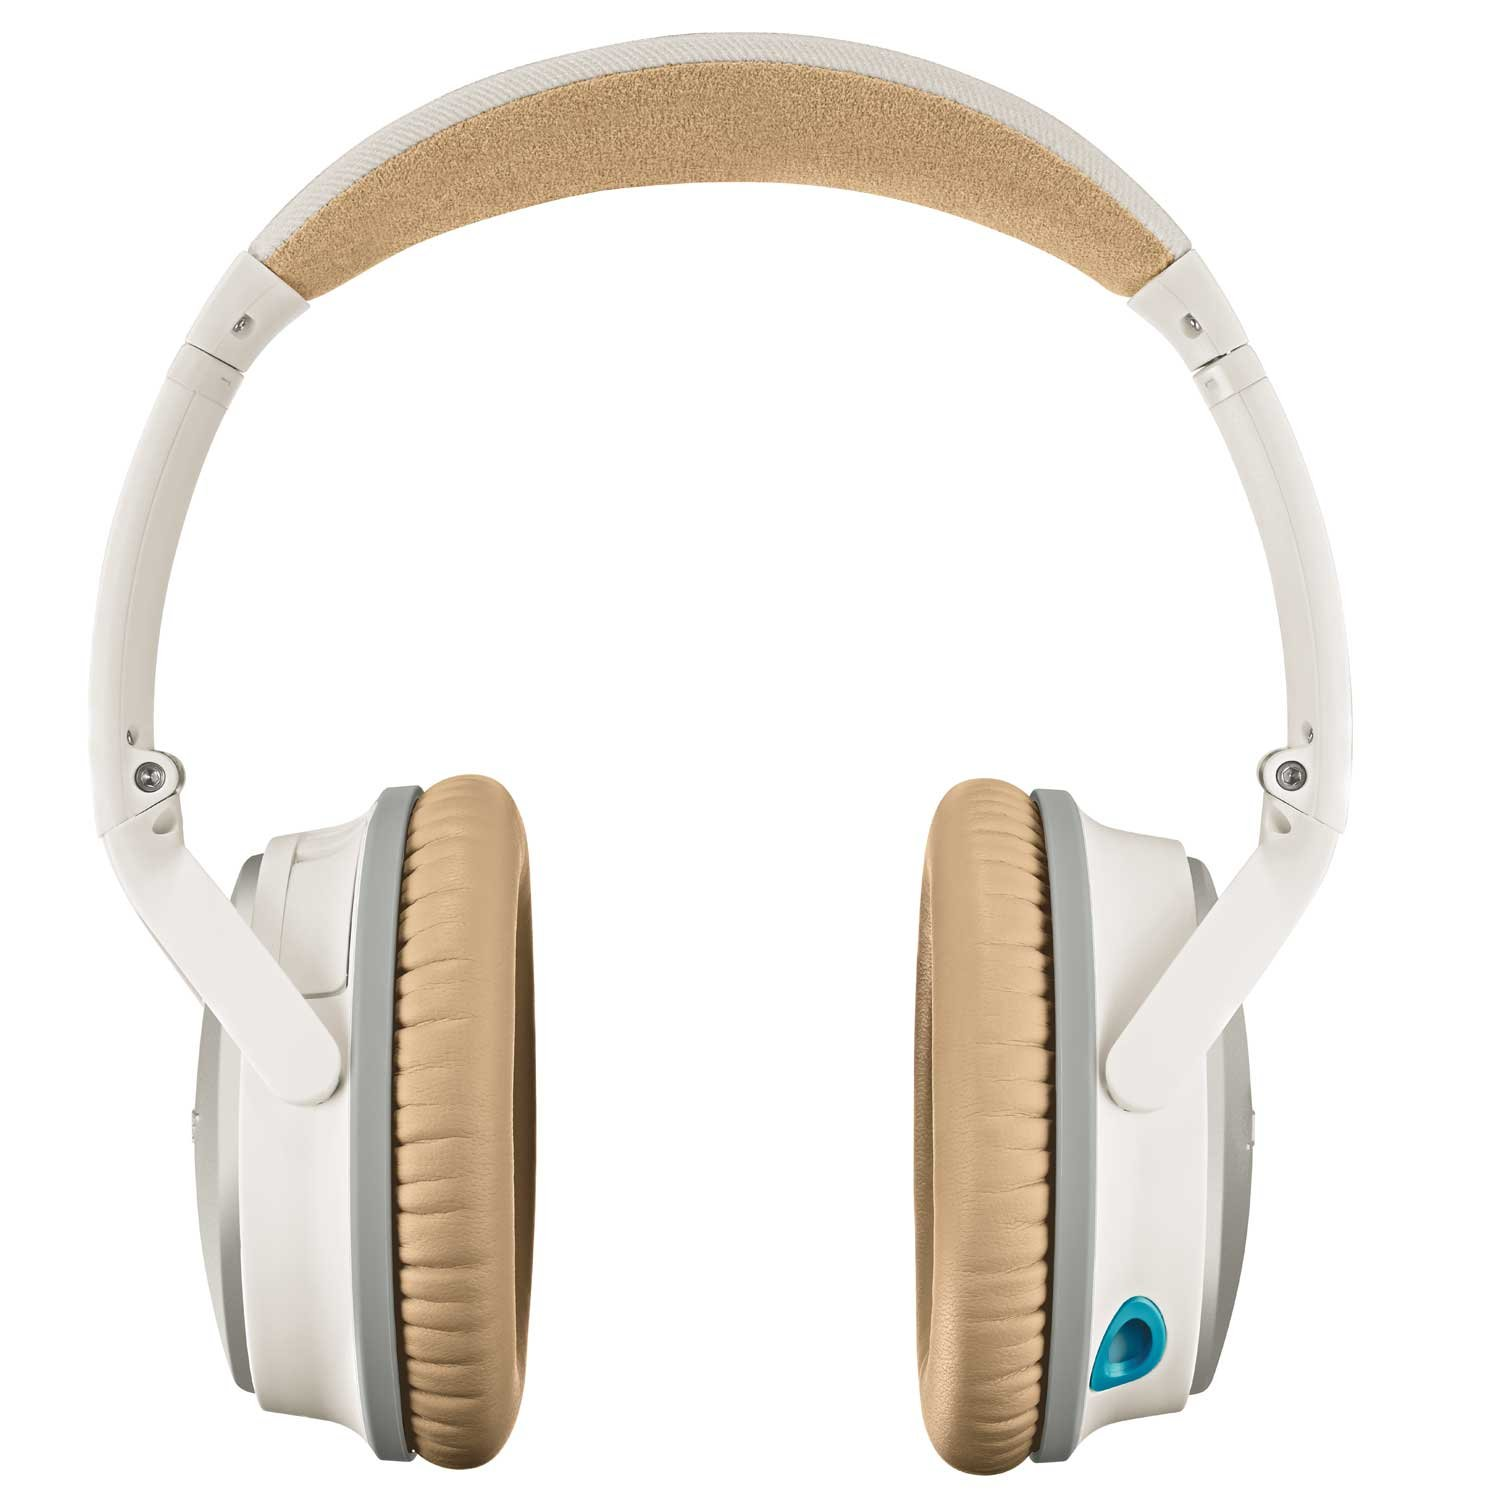 bose noise cancelling headphones white. buy bose quietcomfort 25 acoustic noise cancelling headphones - apple devices, white online at low prices in india amazon.in o